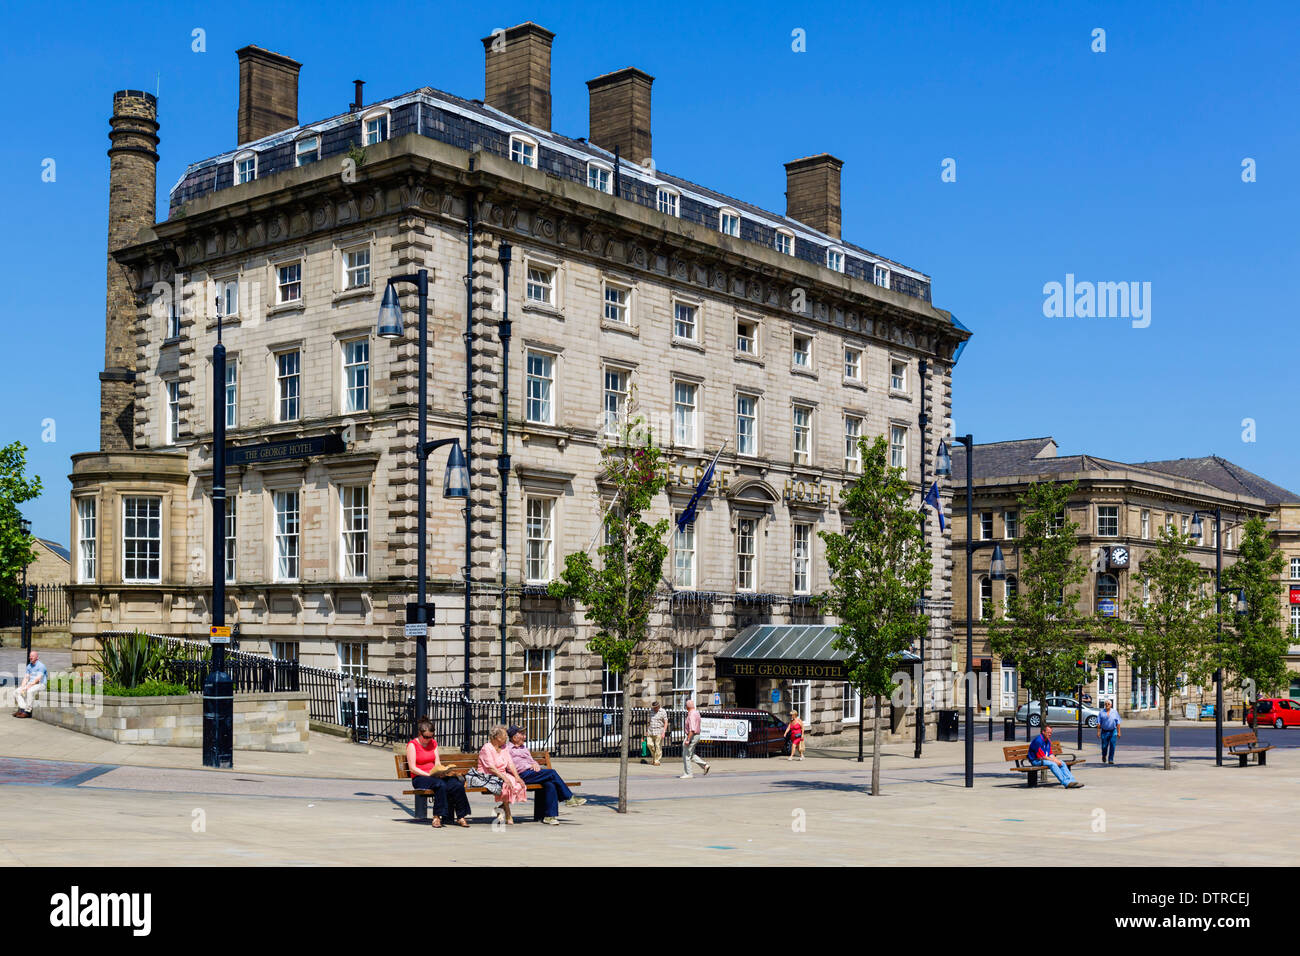 The George Hotel, where Rugby League was founded, St George's Square, Huddersfield, West Yorkshire, England, UK - Stock Image